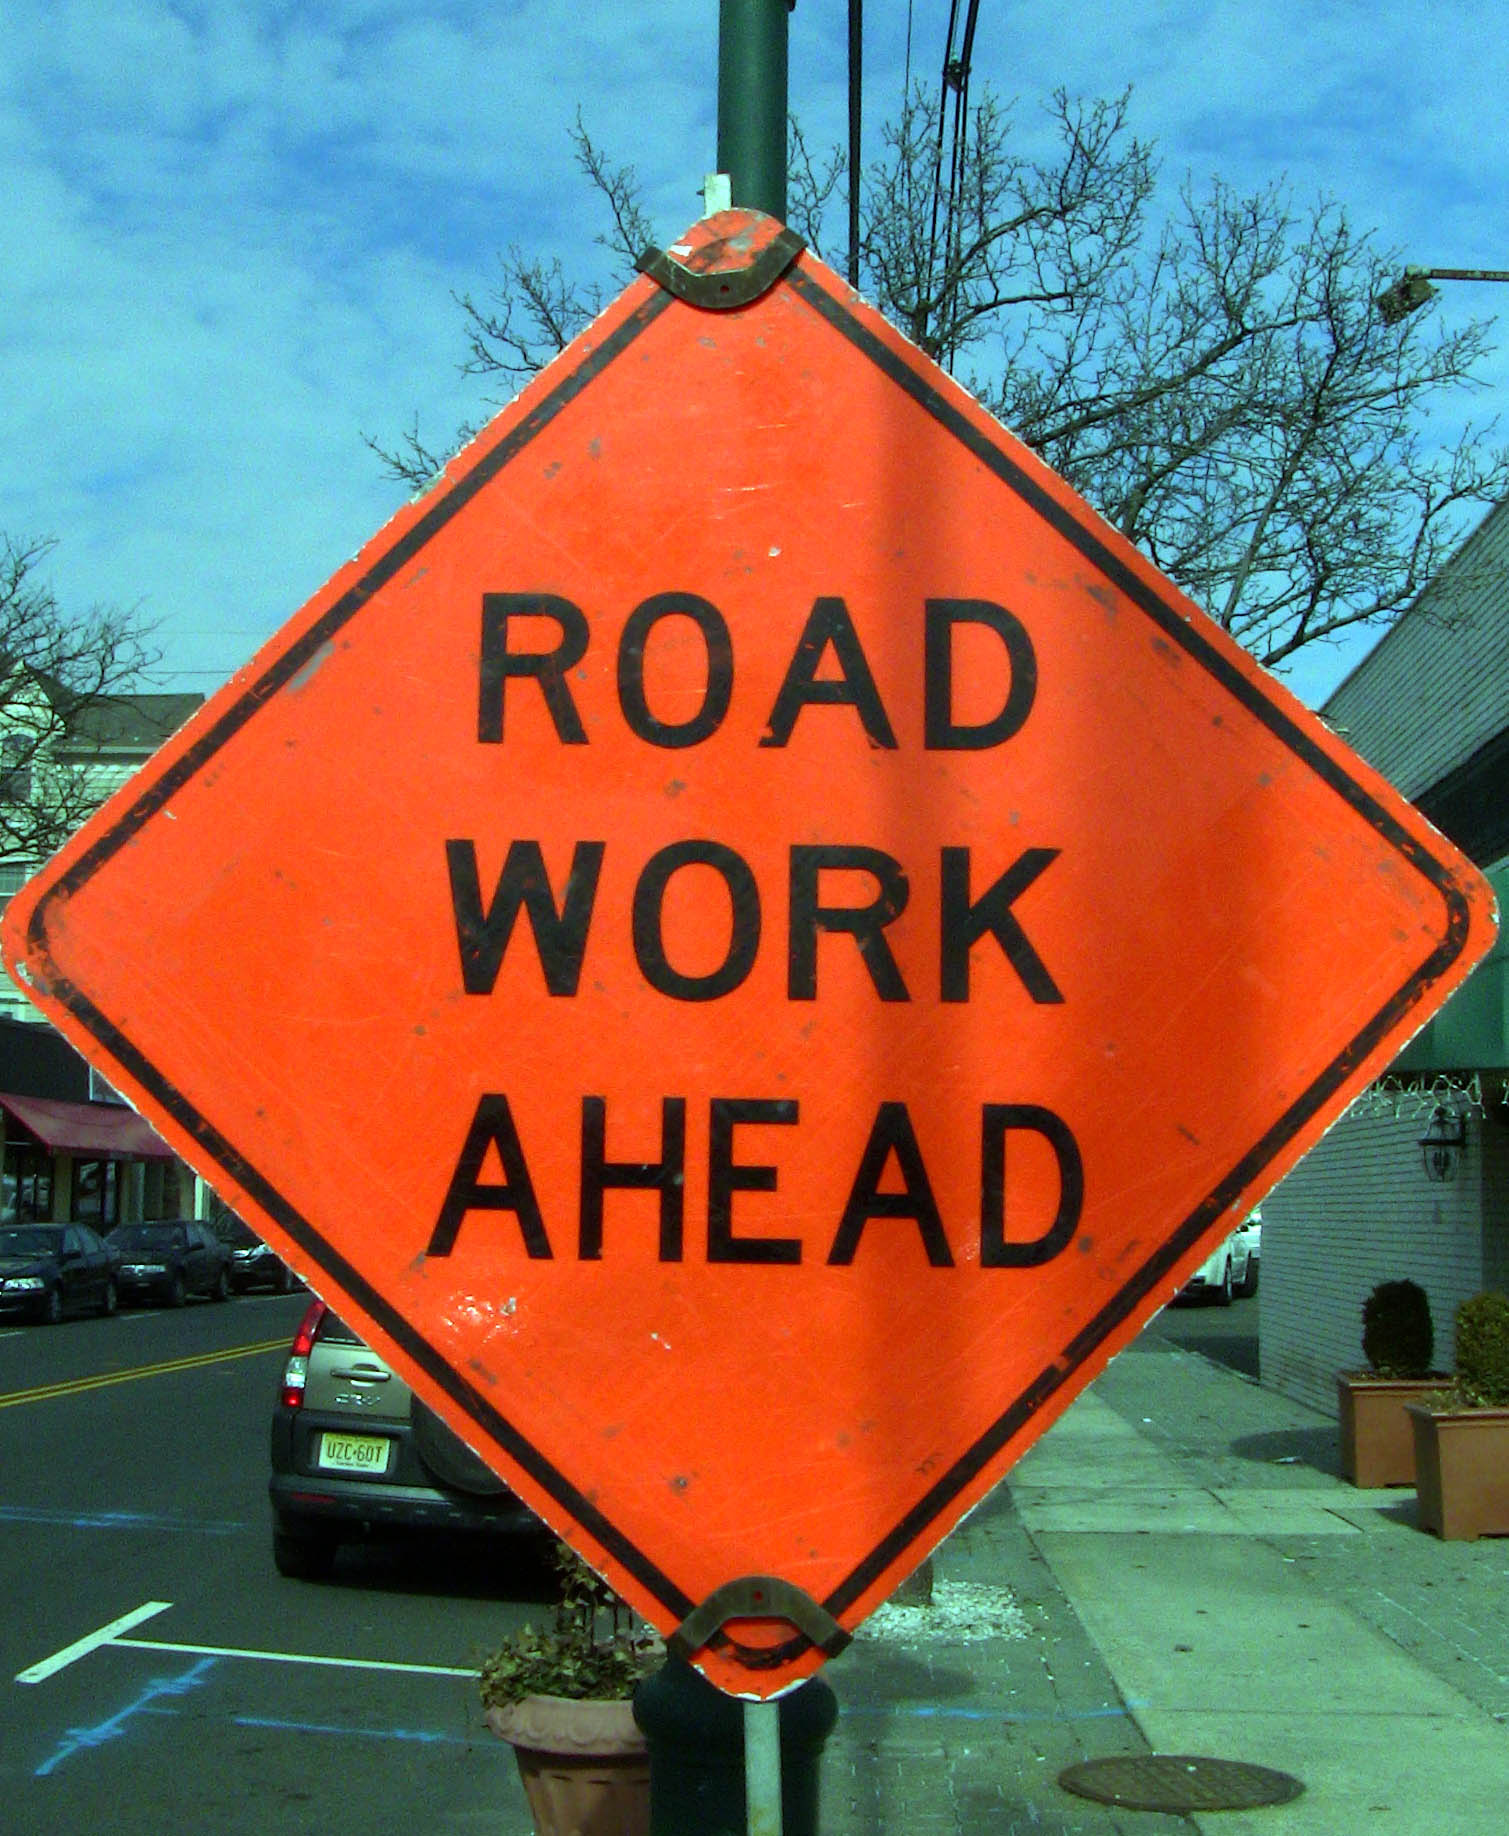 d3c4b7574fc9131be945_Road_Work_Ahead_sign.jpg